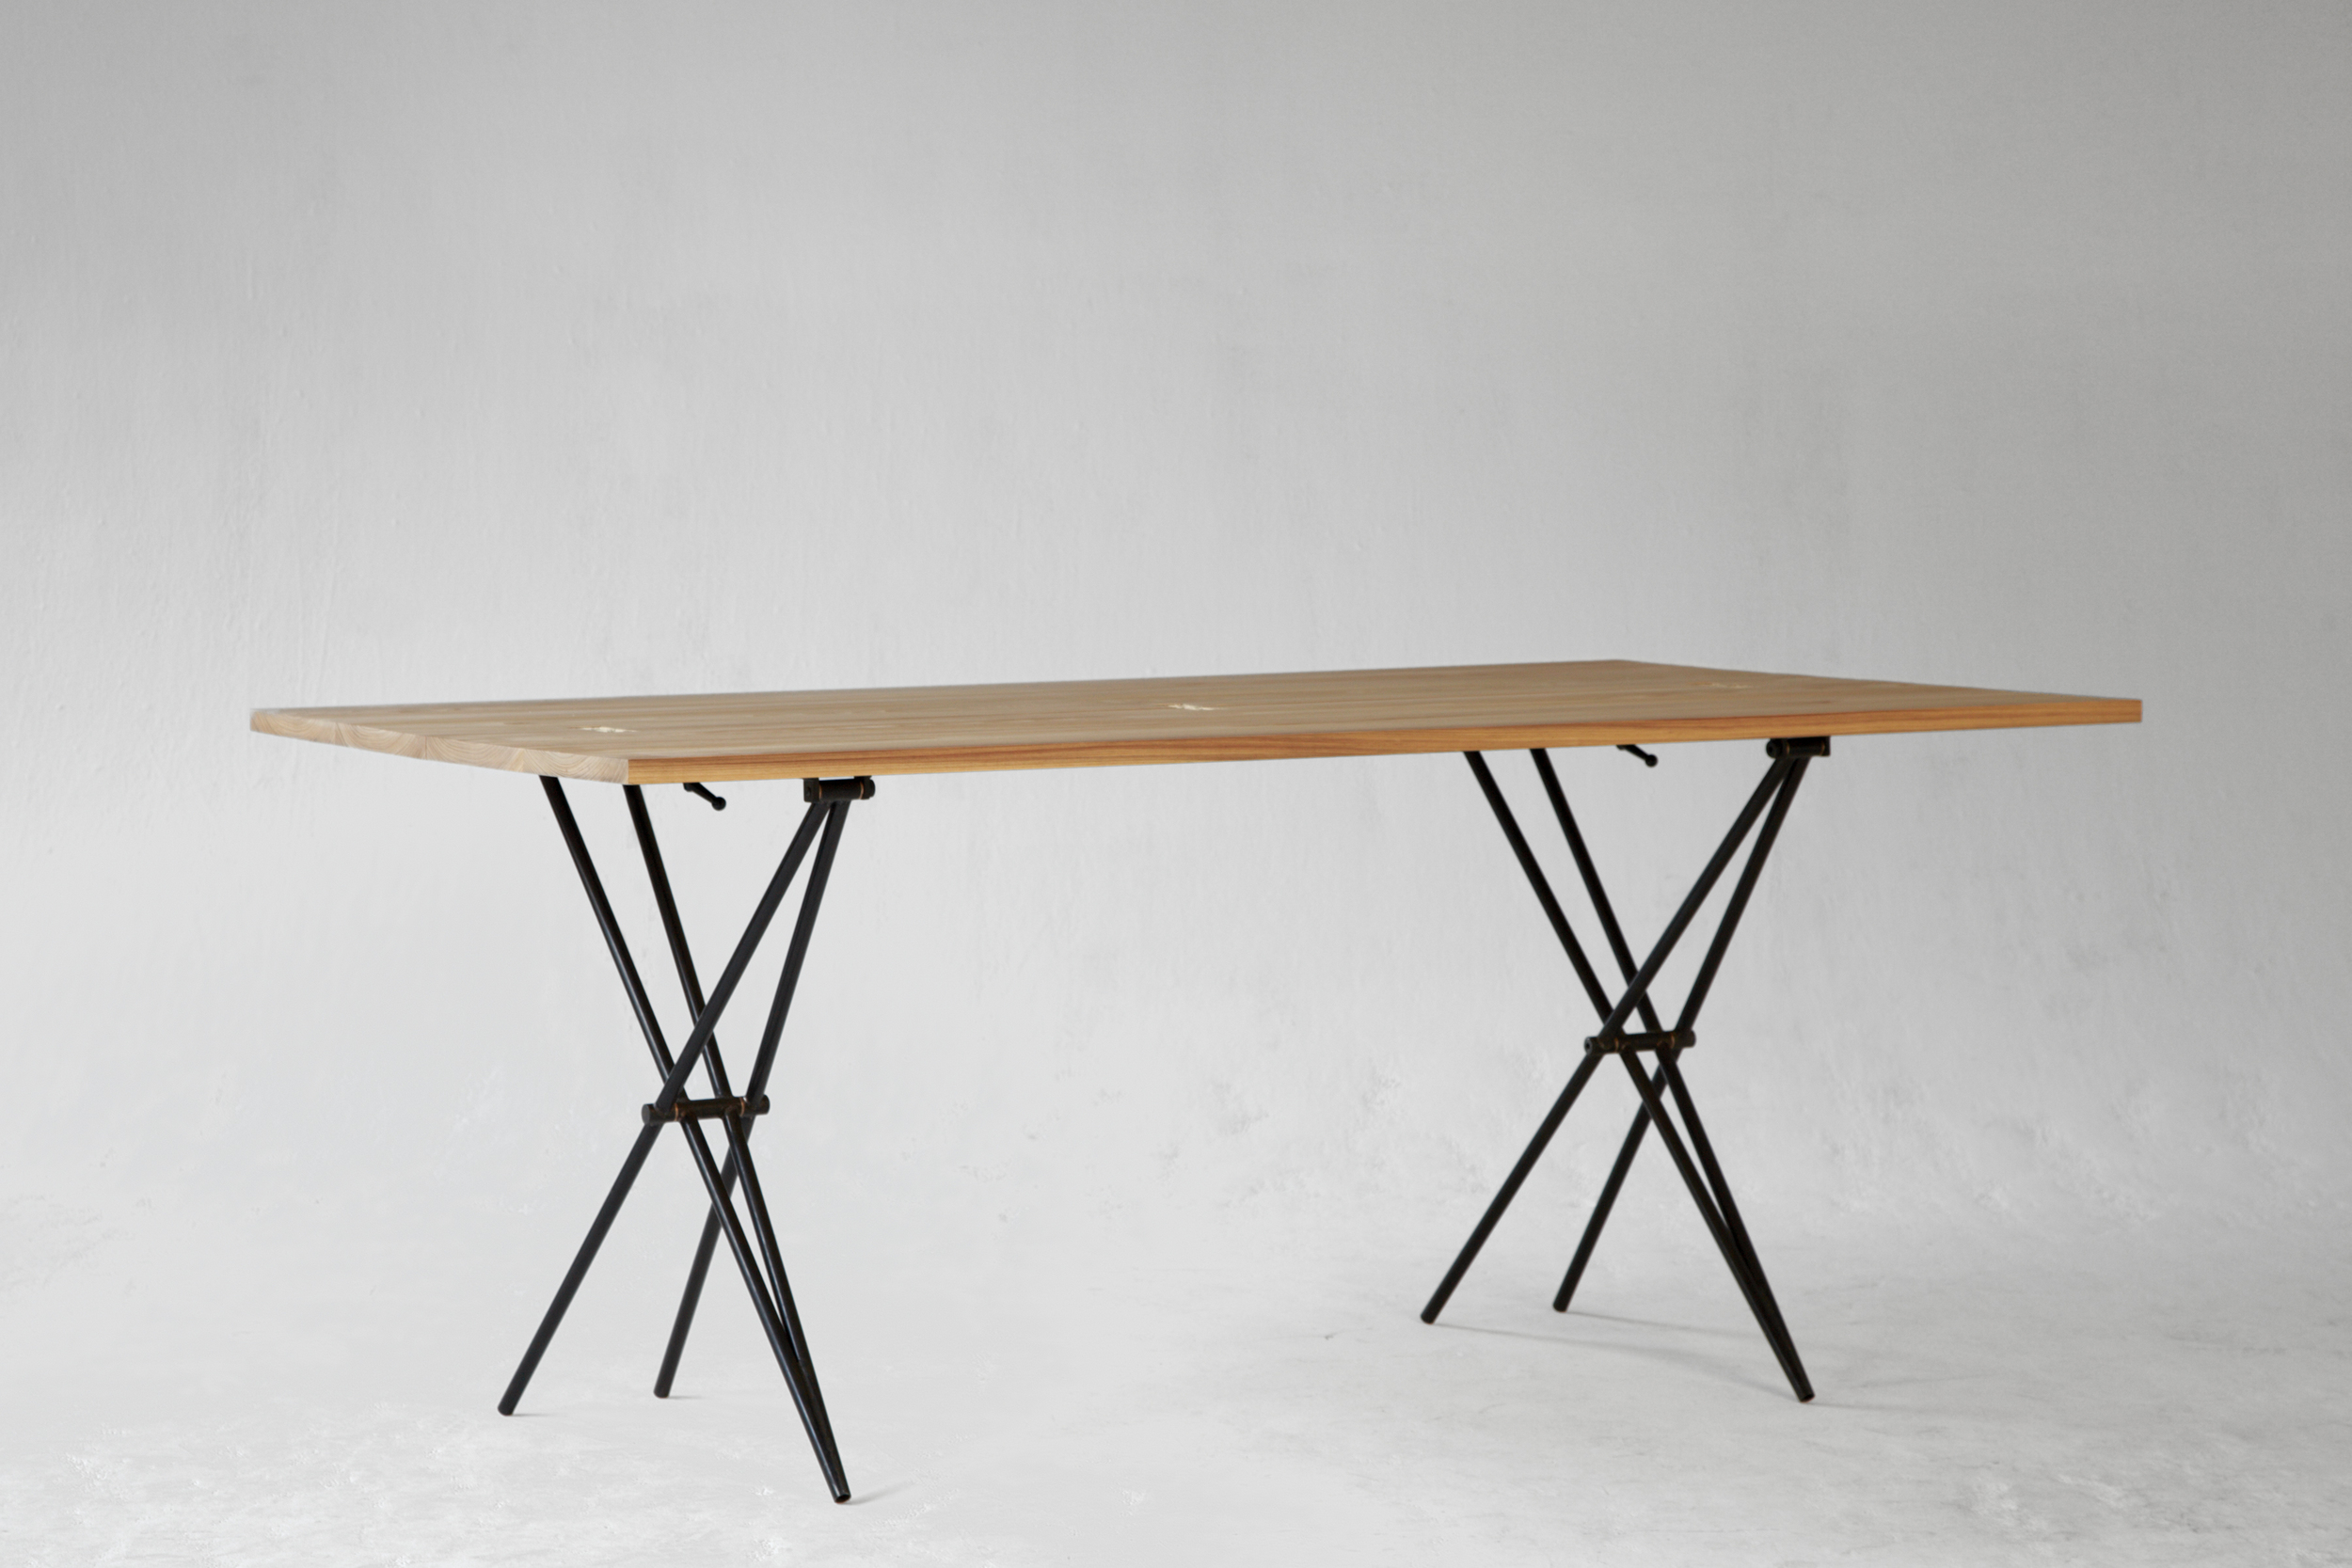 "Configured as a 72"" by 40"" dining table, the Larmer table can seat 6 comfortably, 8 intimately."